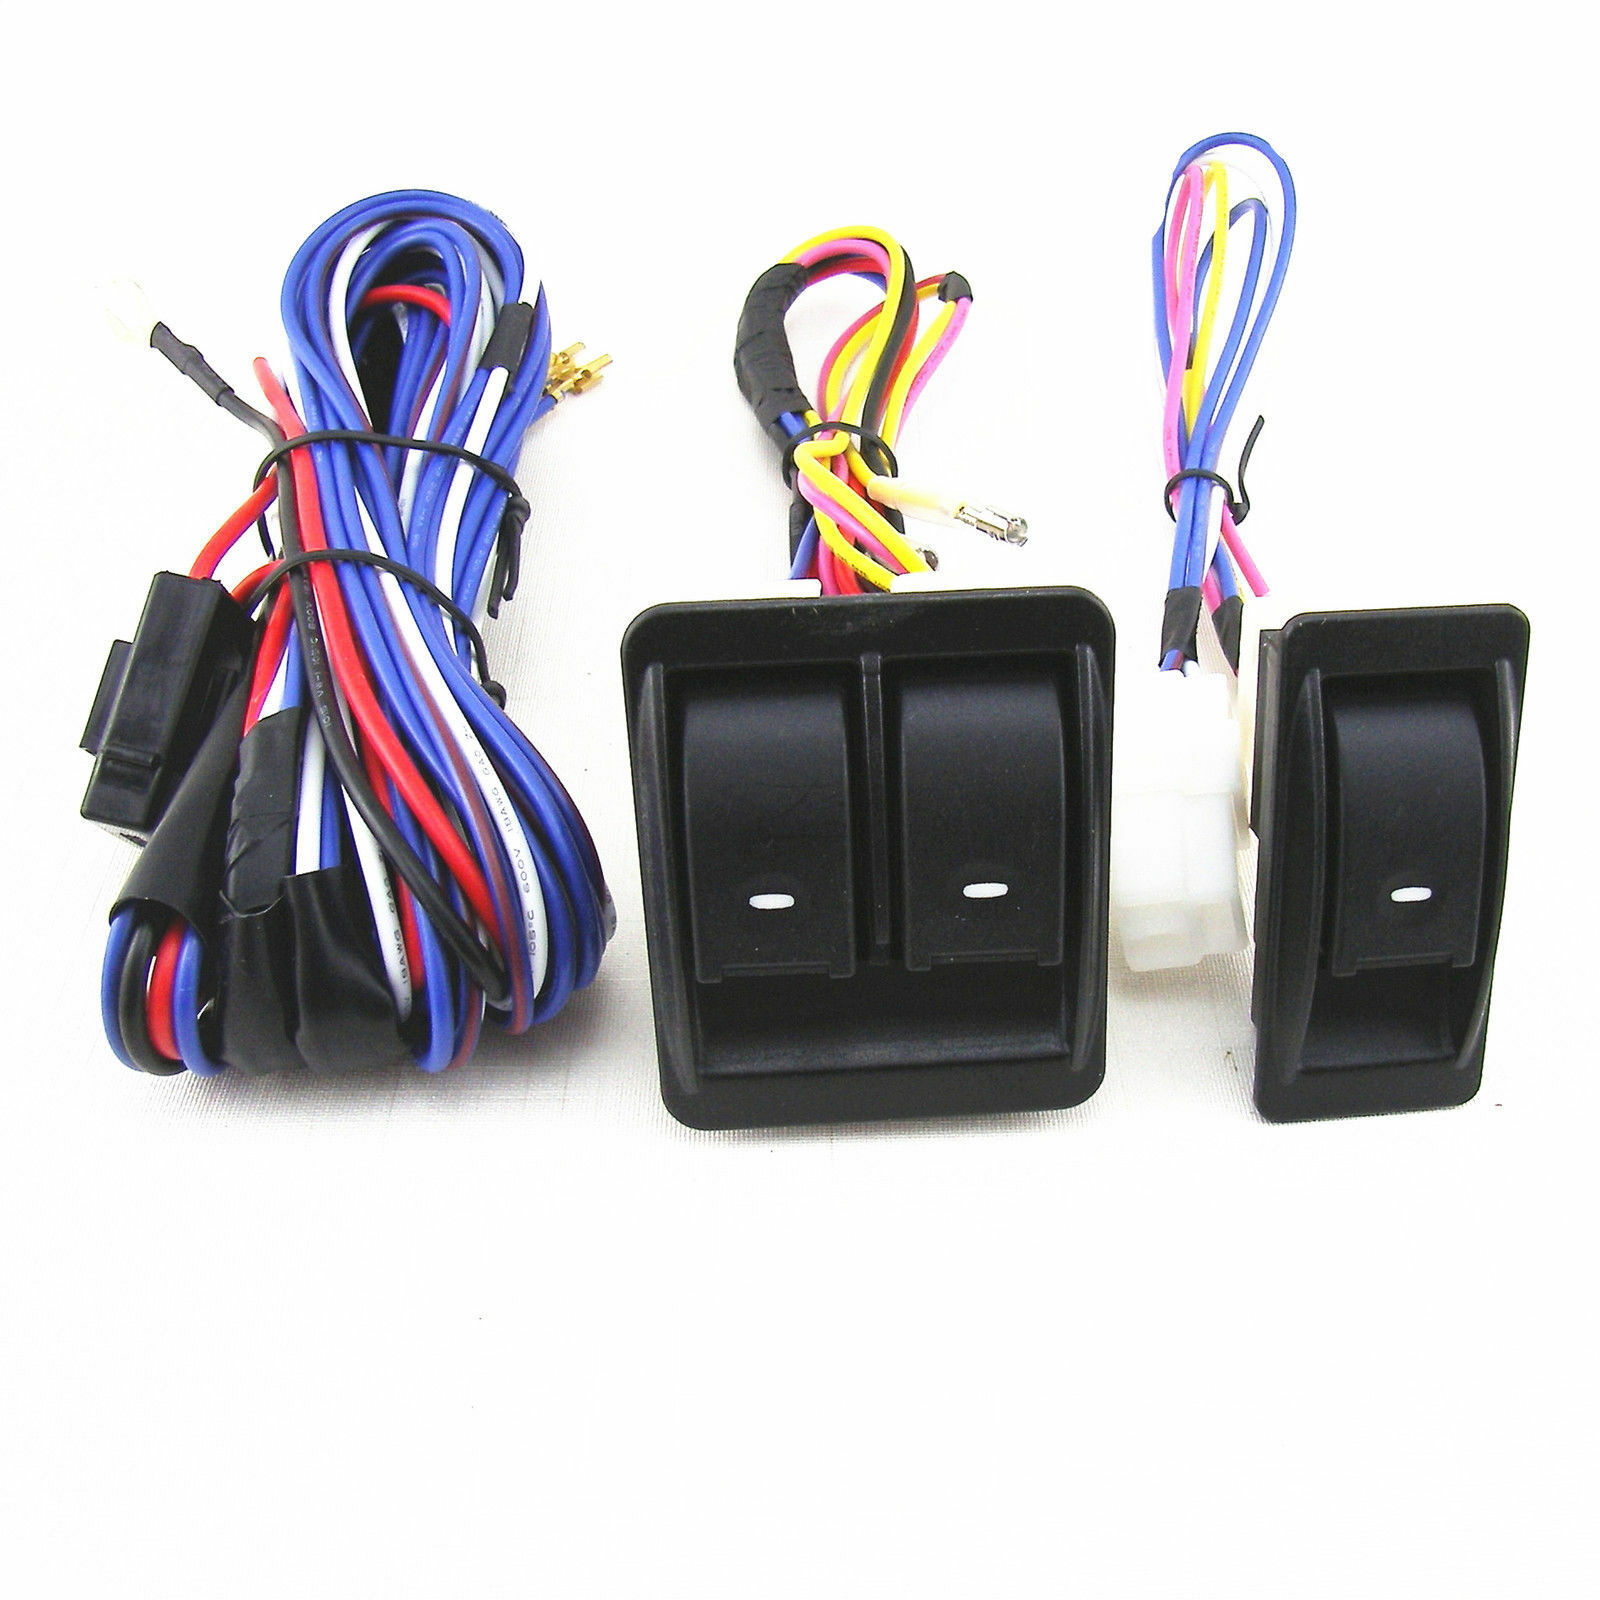 12V 12 Volt Car Electric Power Window Master Control Switch With Wiring  Harness 1 of 8FREE Shipping ...